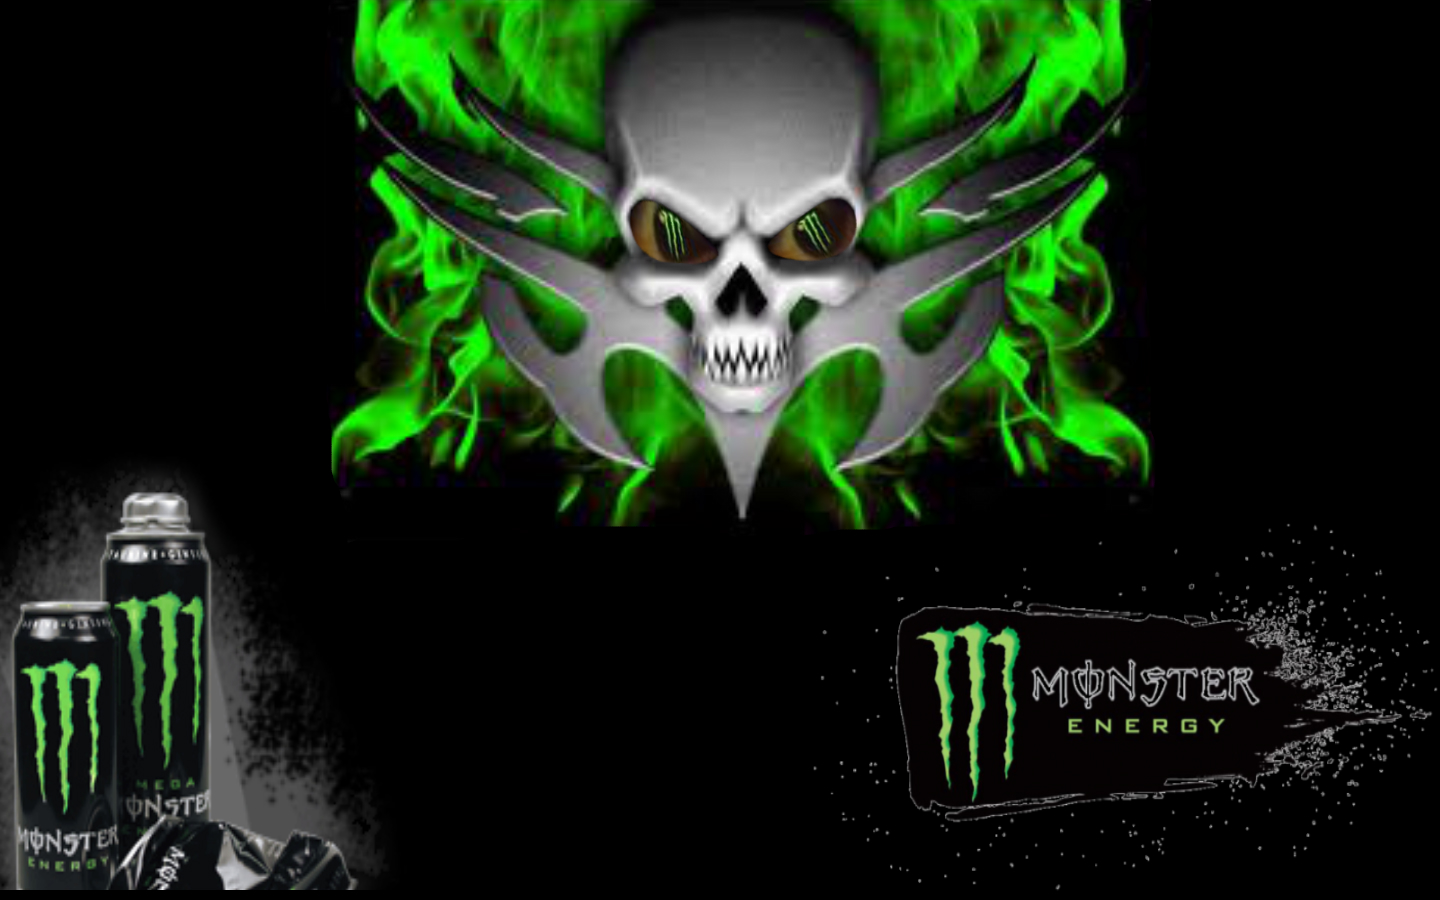 Monster Energy Computer Wallpapers Desktop Backgrounds 1440x900